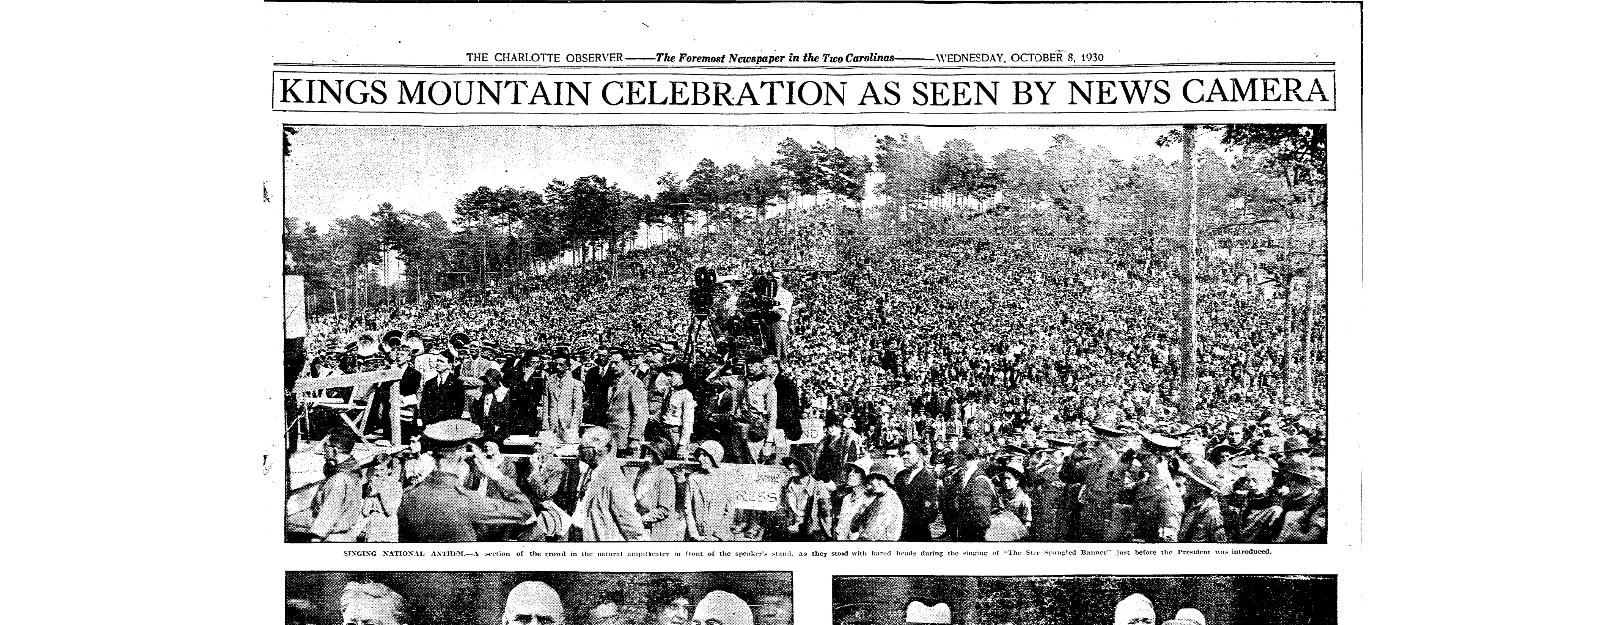 Picture from the celebration in the Charlotte Observer on October 8, 1930.